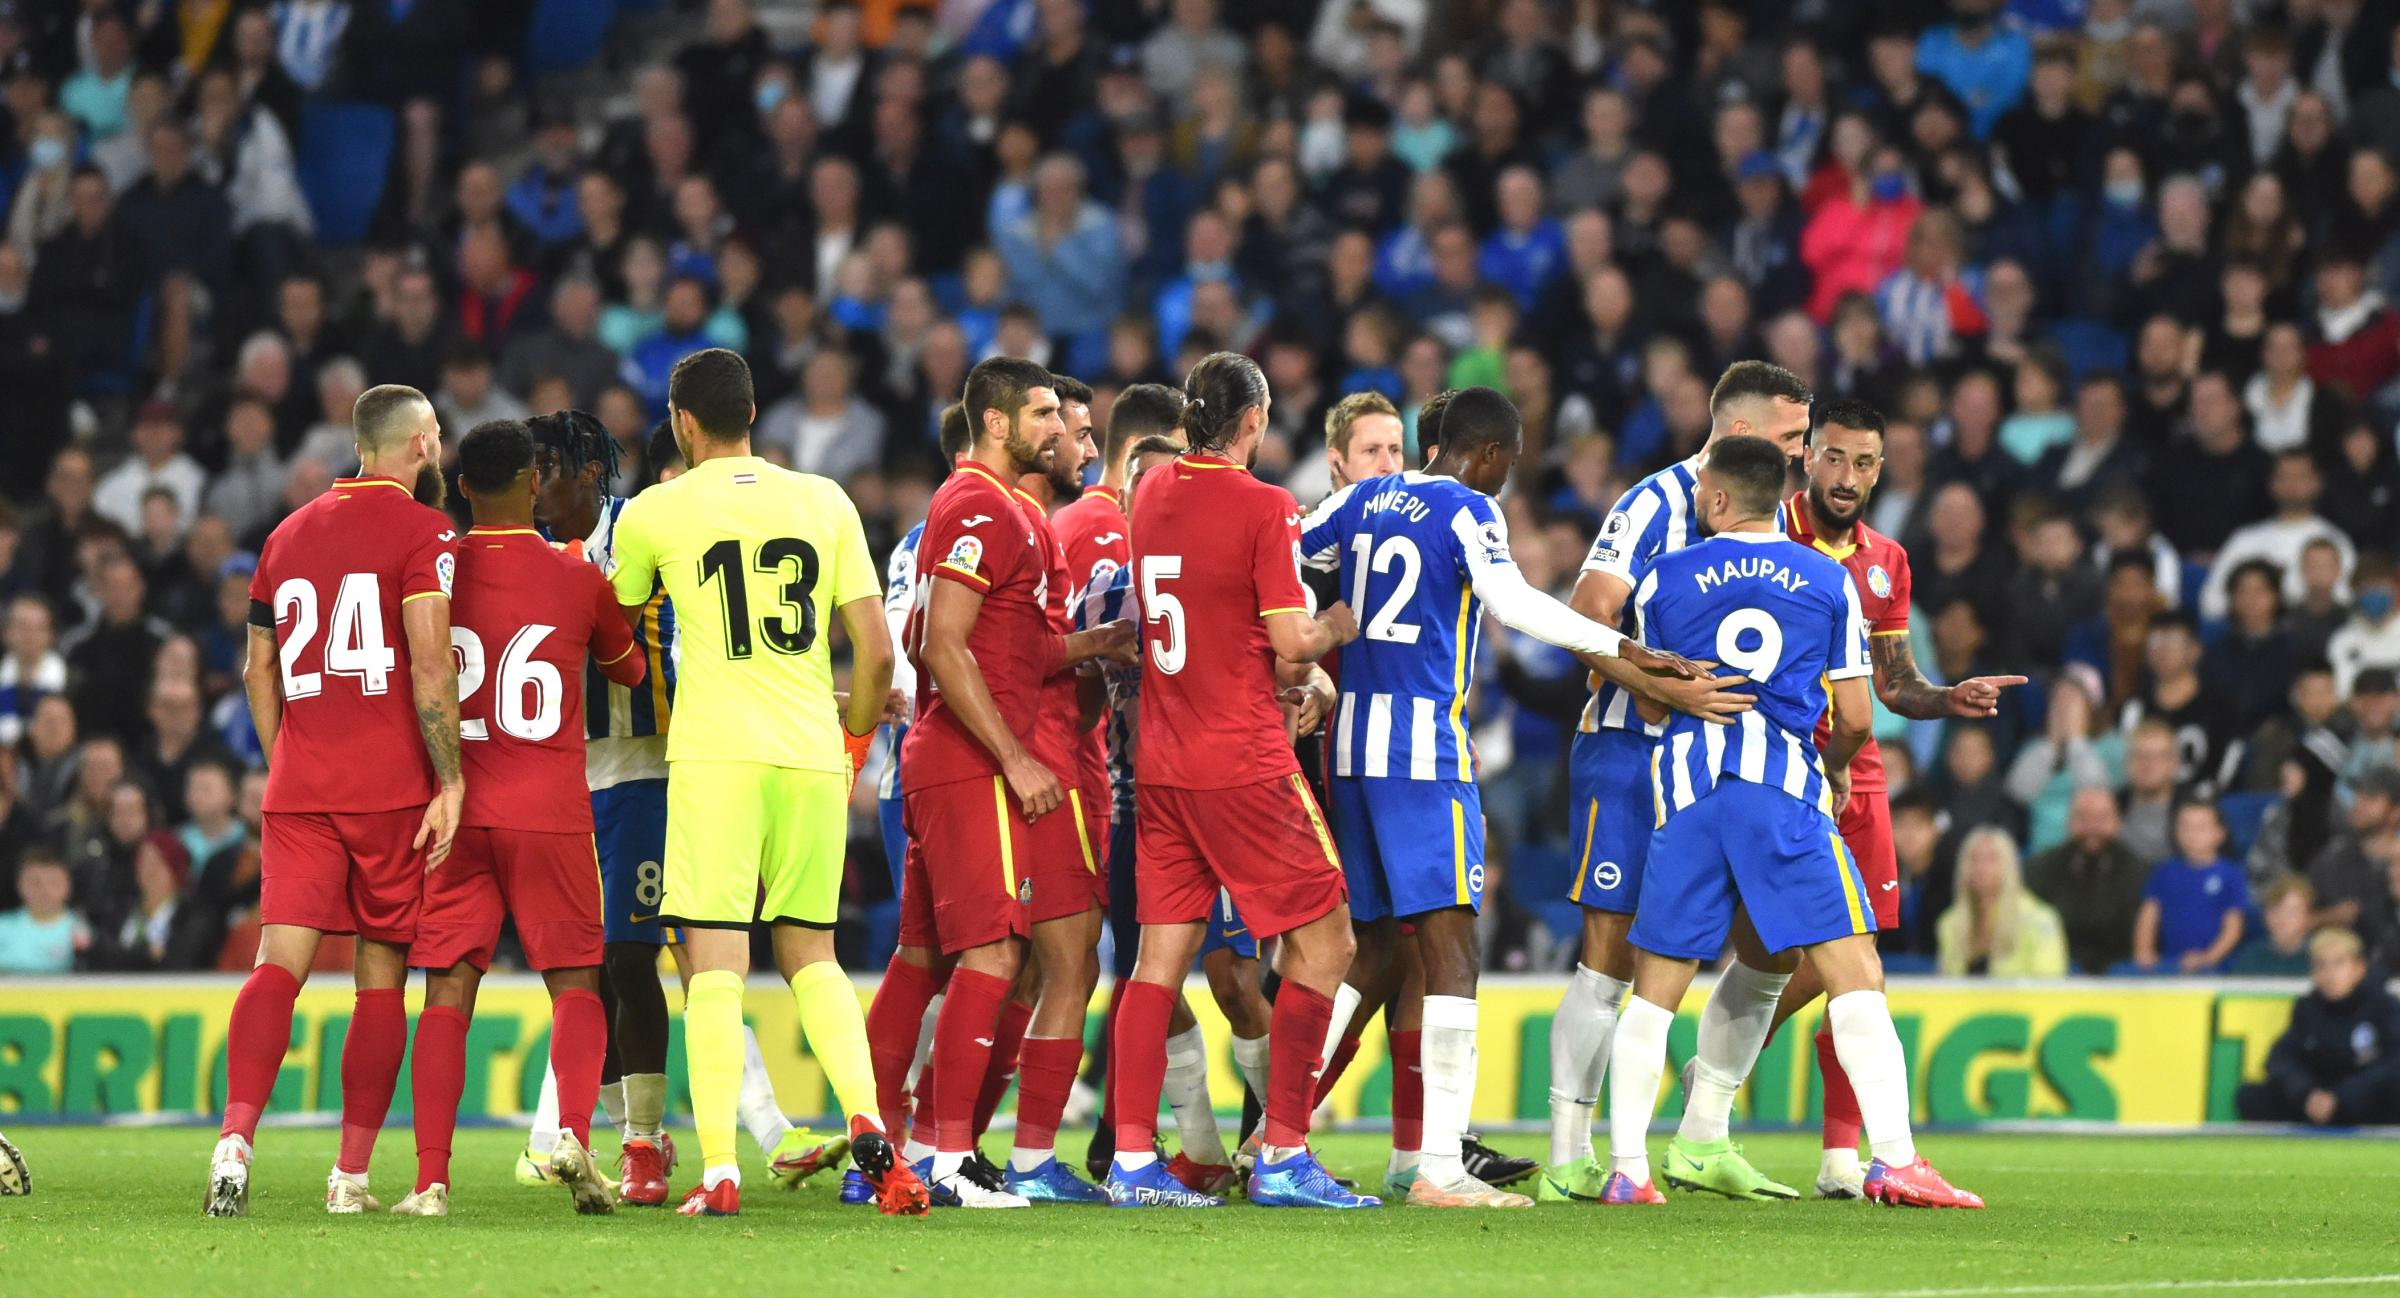 New Premier League ref John Brooks takes charge at Brighton